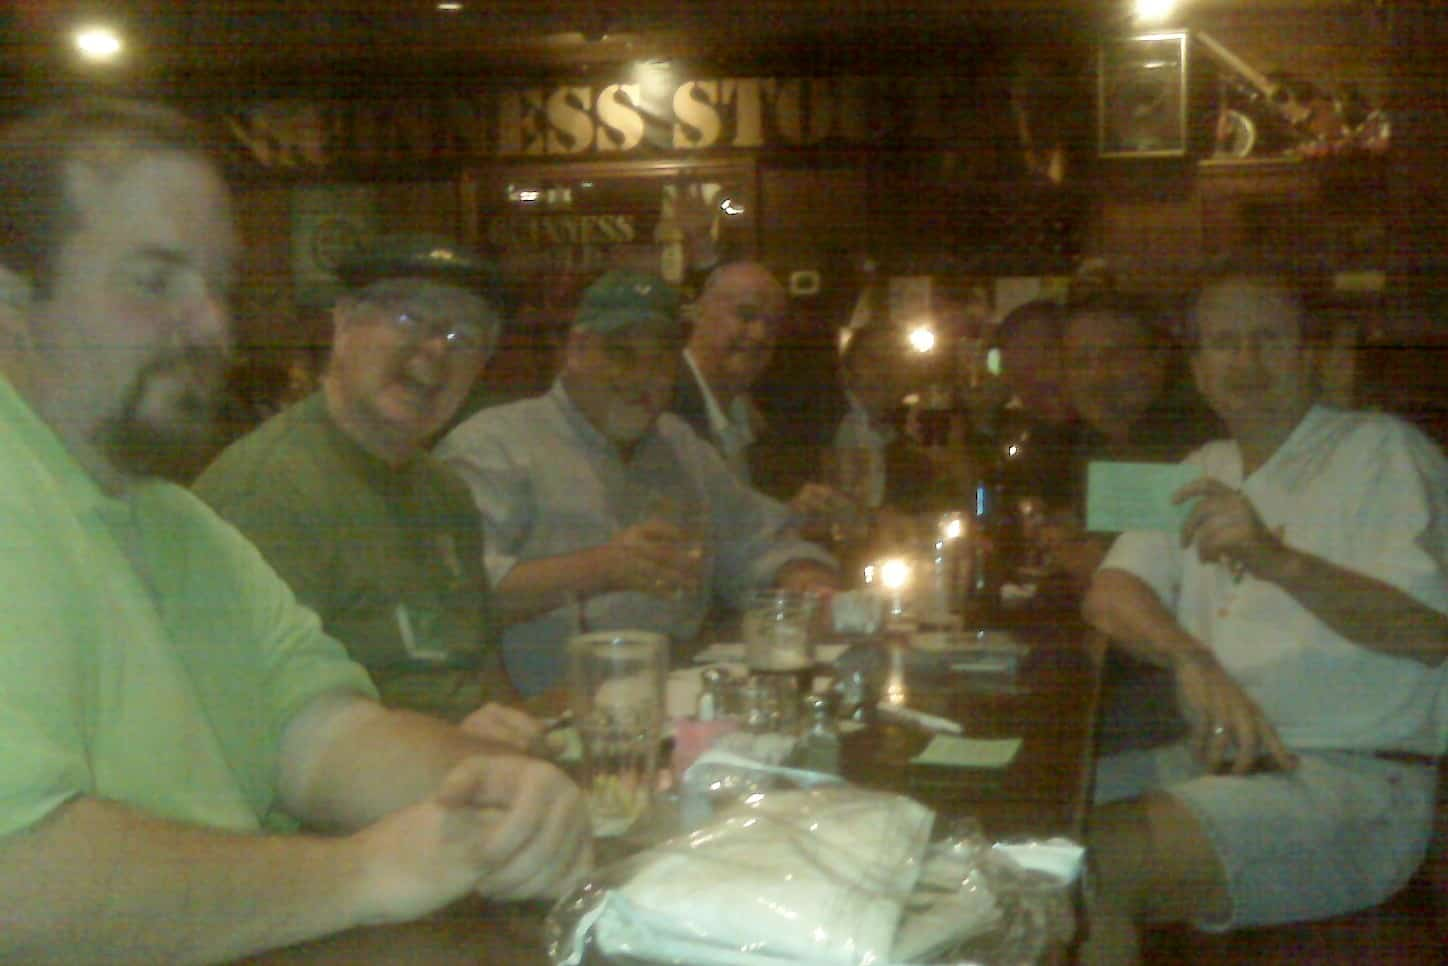 Pat Knightly, Paul M, Tom Murphy, Hugh M, Bill M, Jim W, Patrick S, Matt C